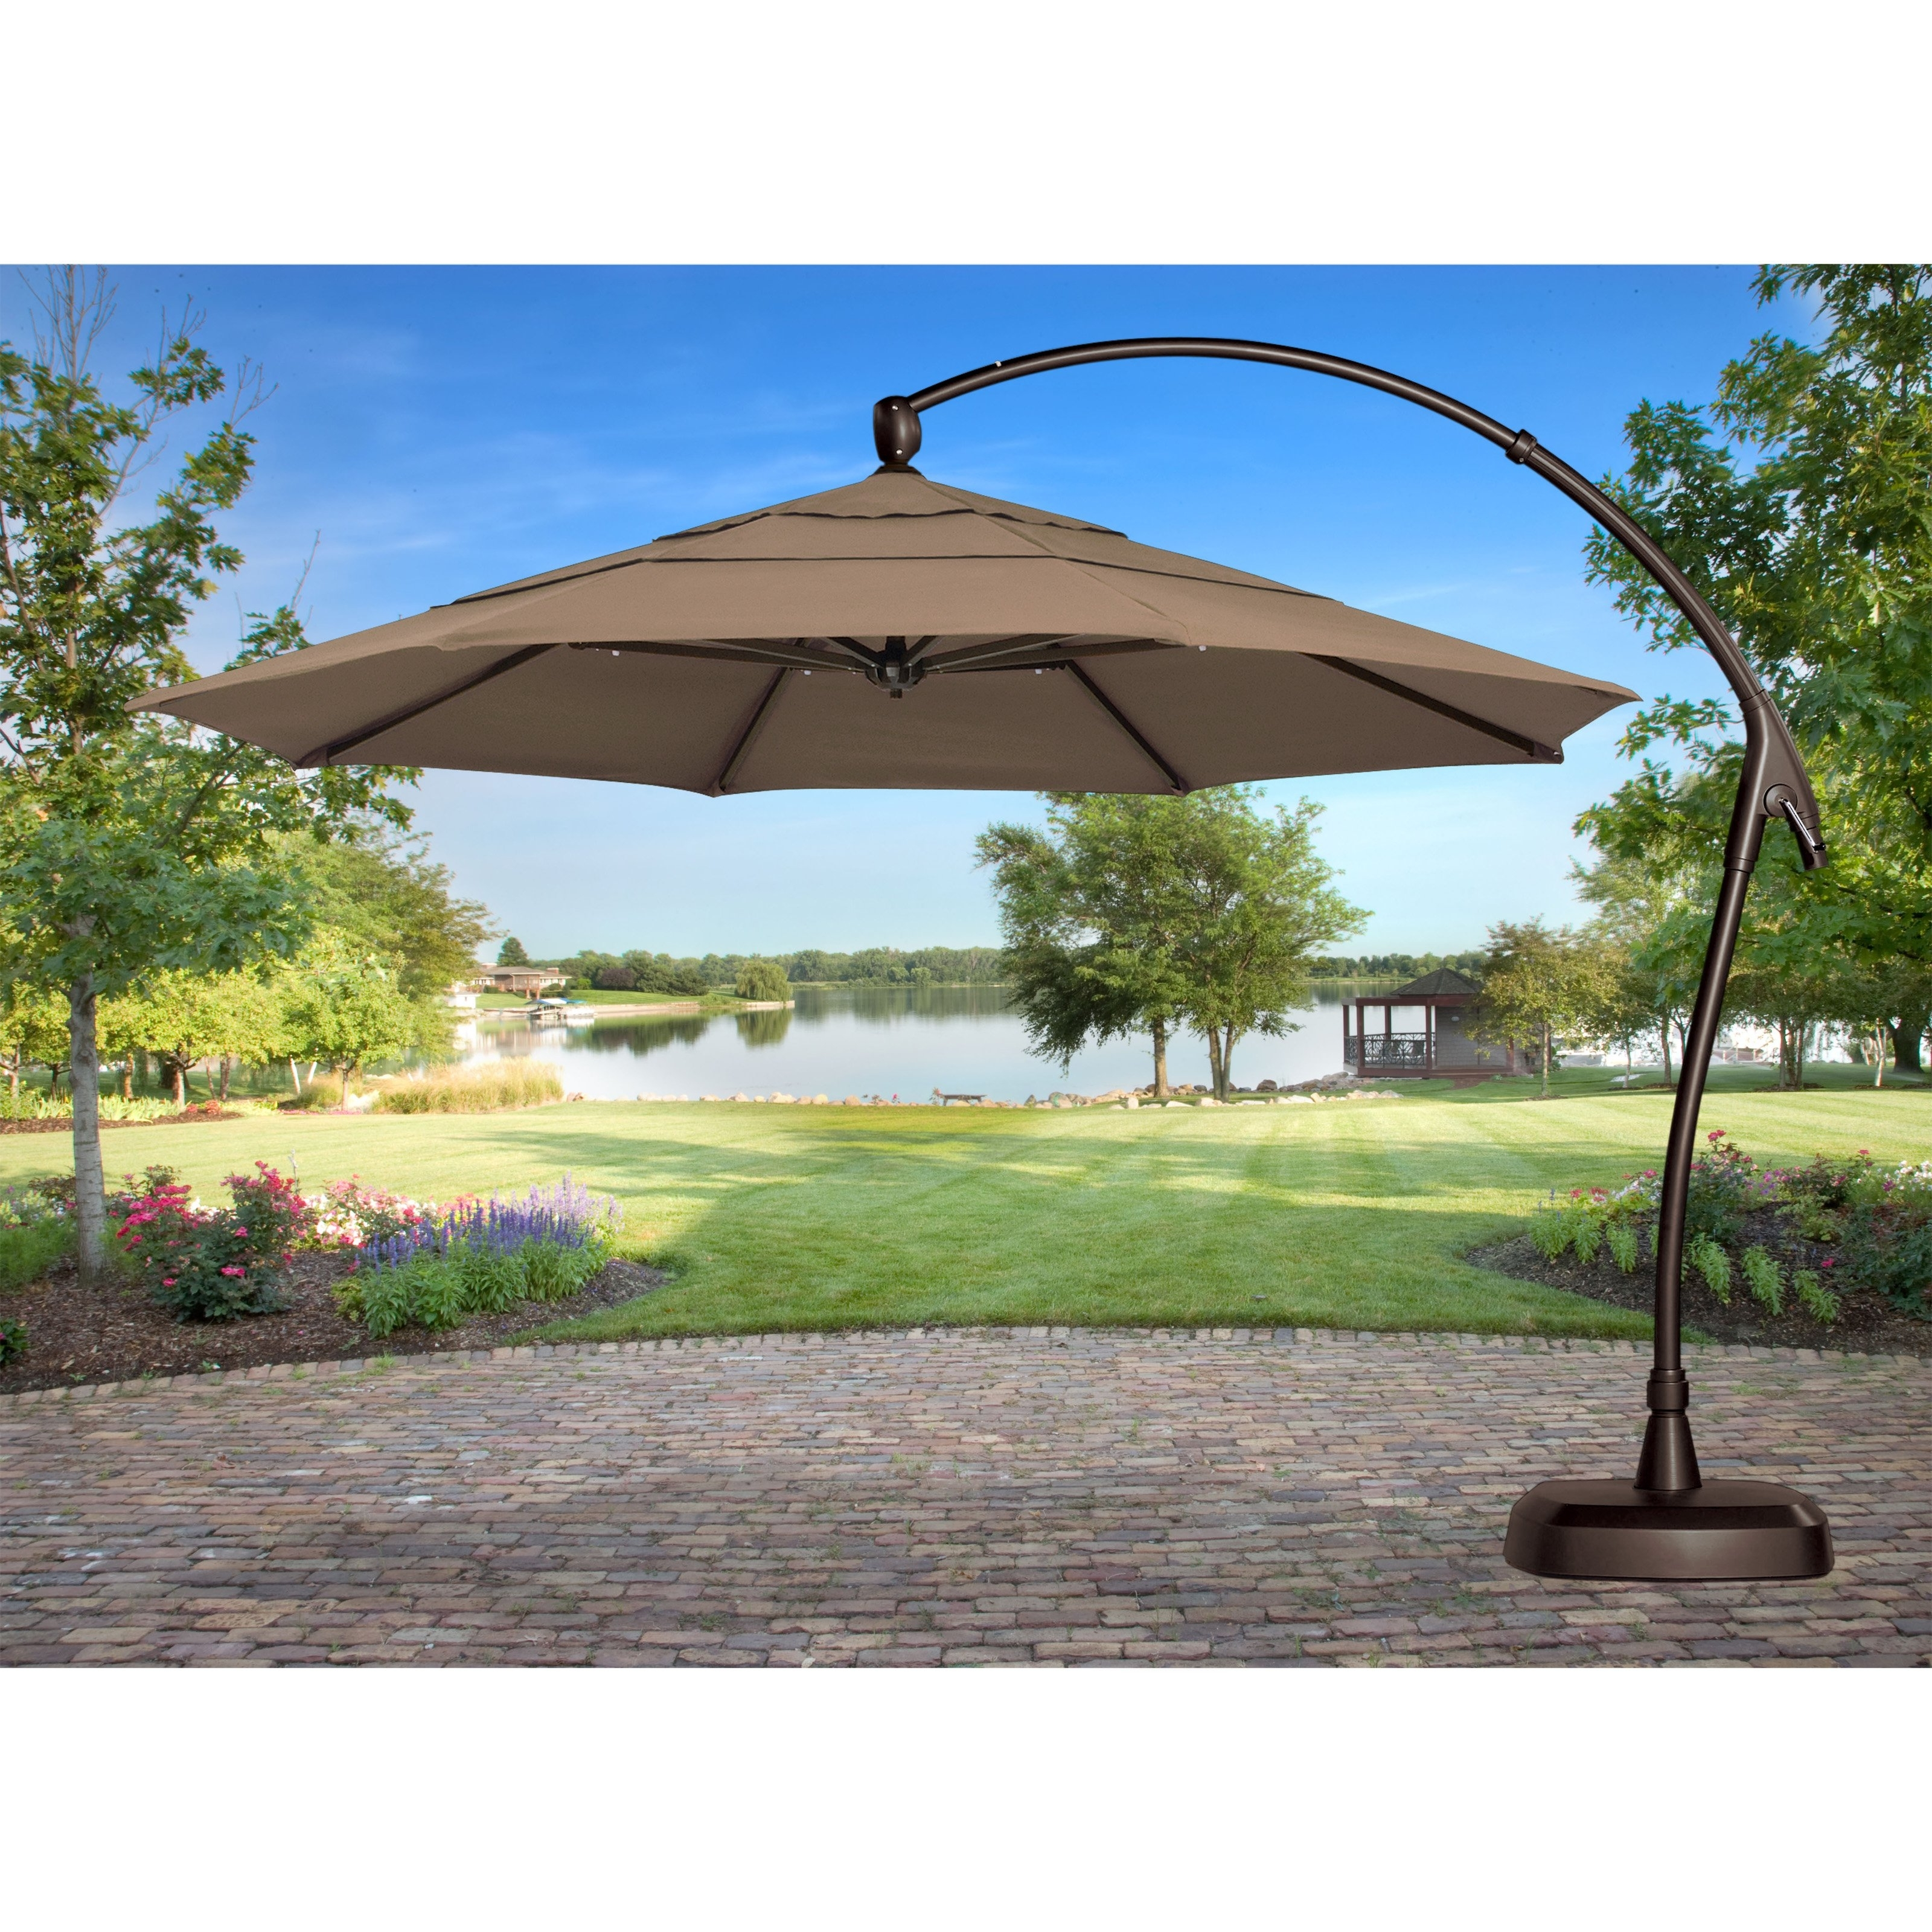 Stylish And Convenient Cantilever Patio Umbrella – Carehomedecor Throughout Most Popular Patio Umbrellas With Wheels (View 18 of 20)